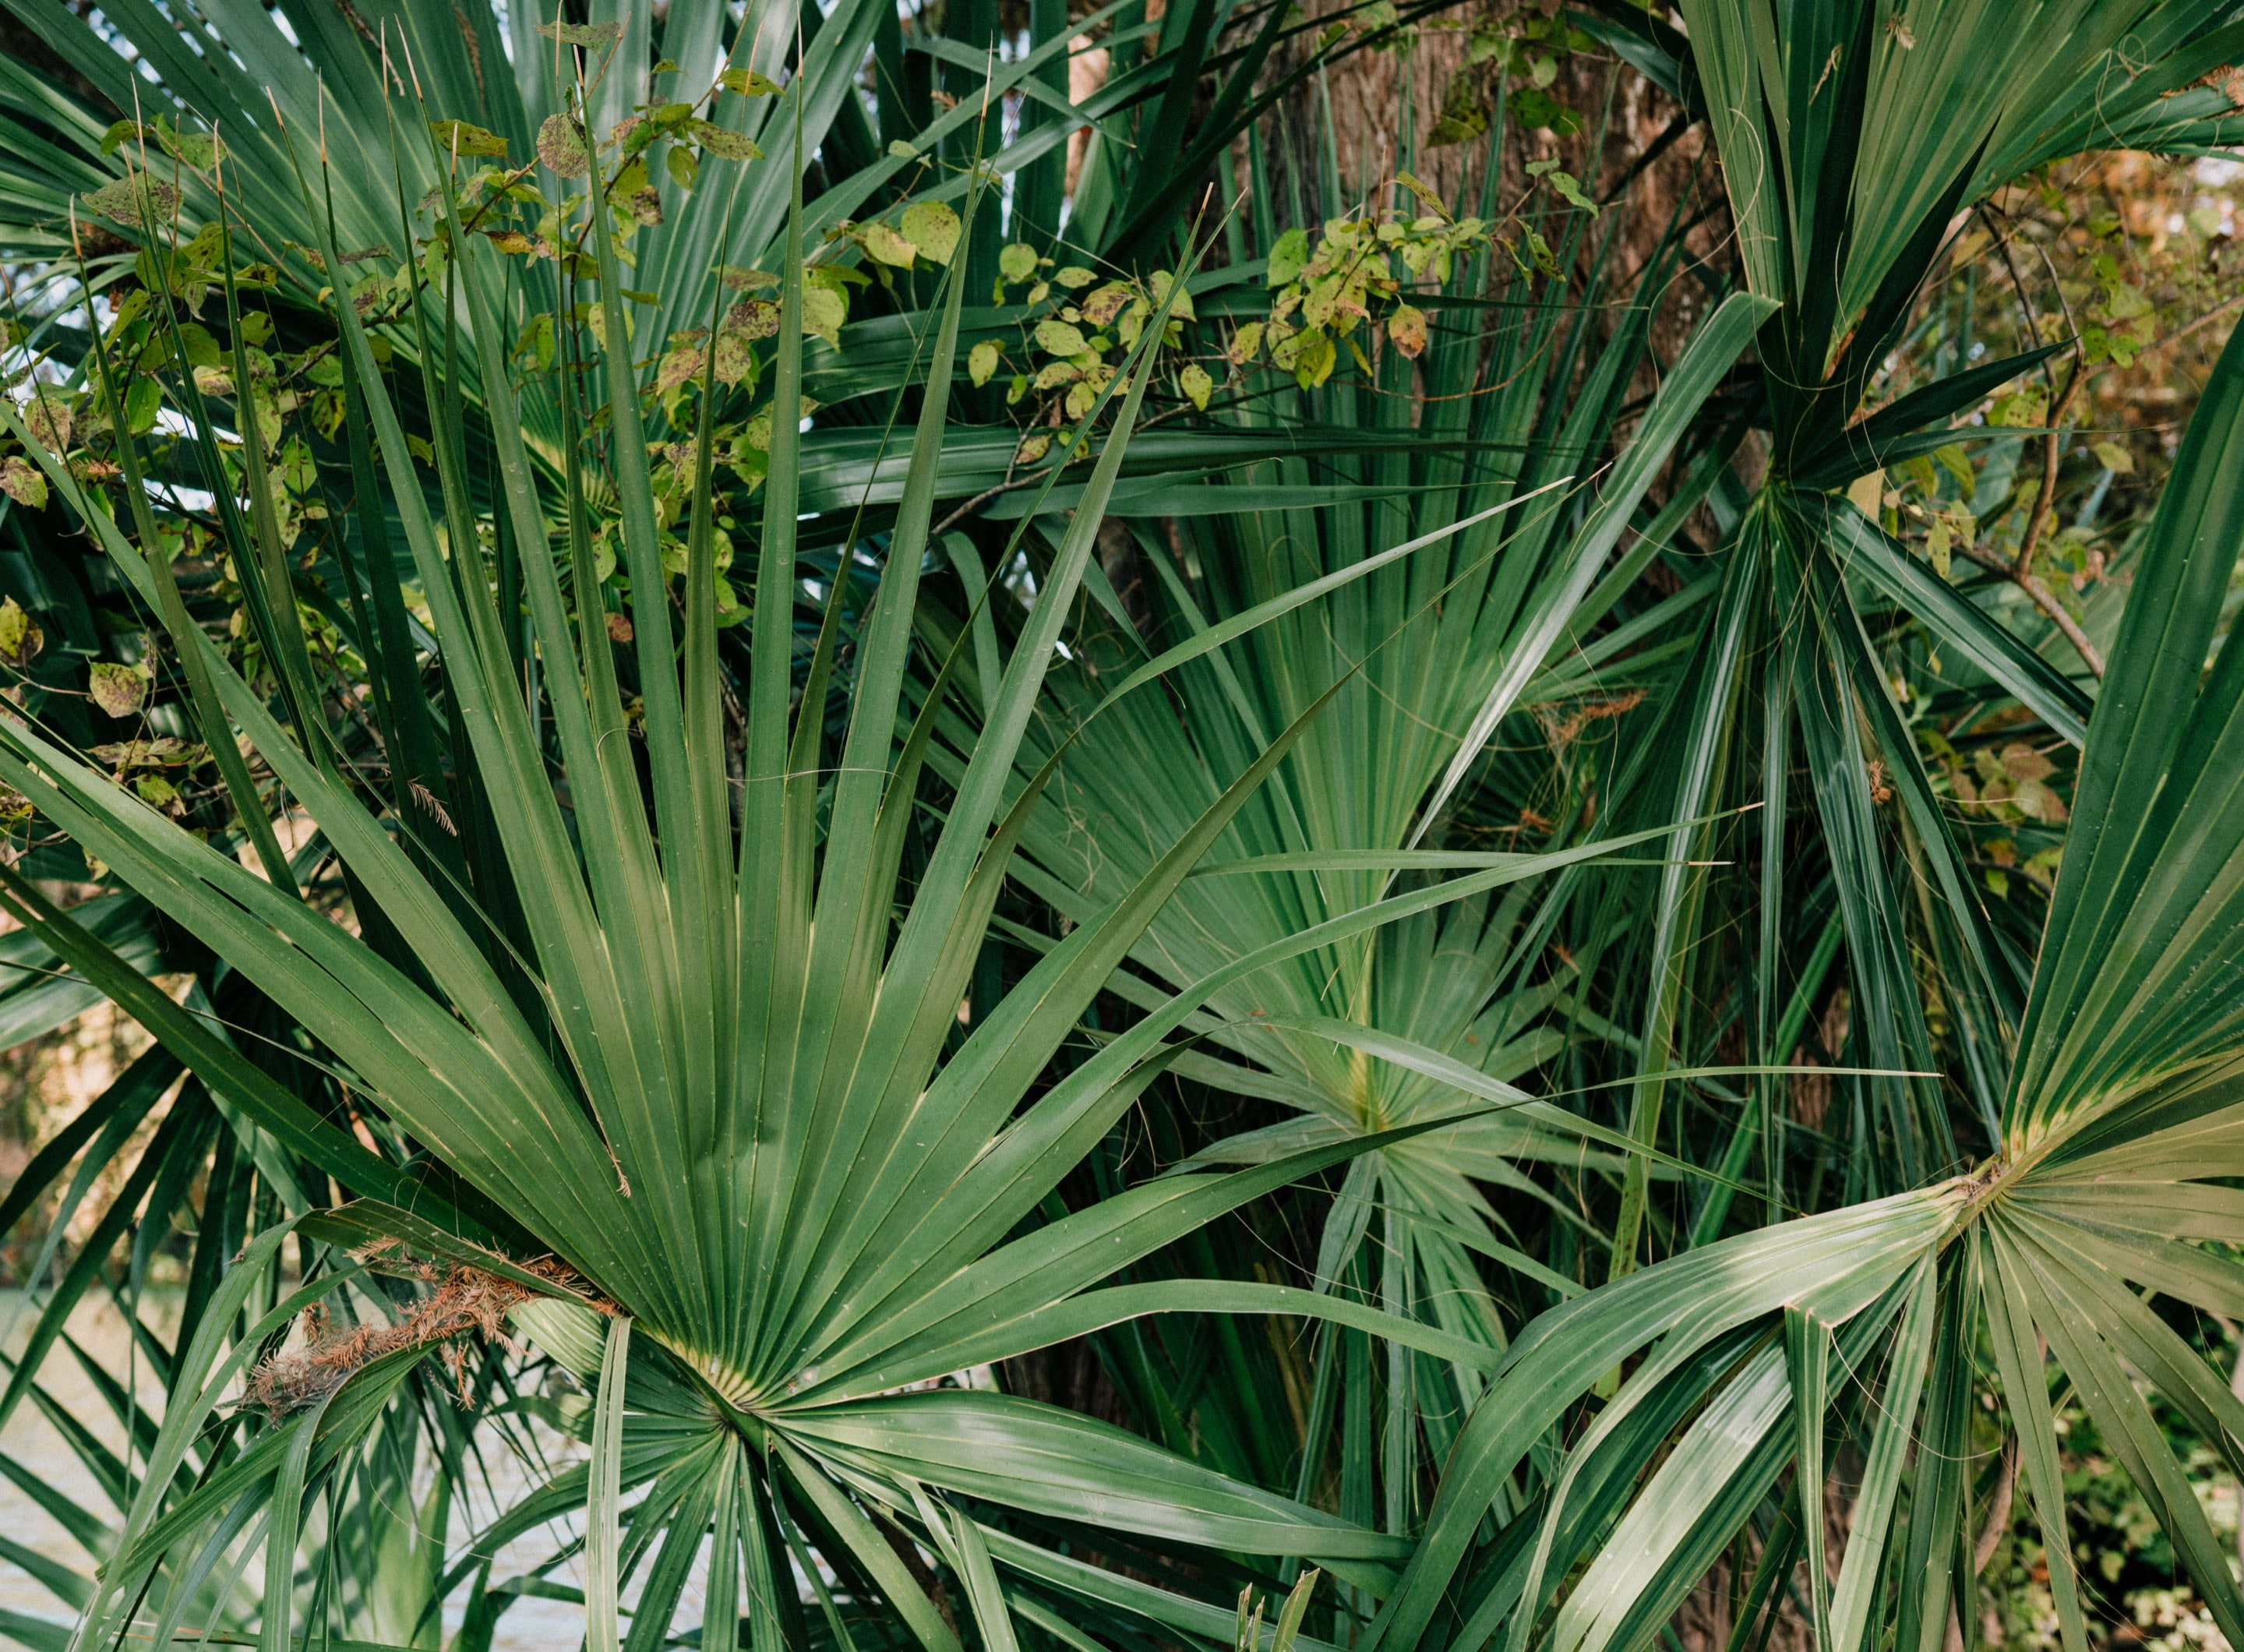 Close up of large, green fan palm fronds